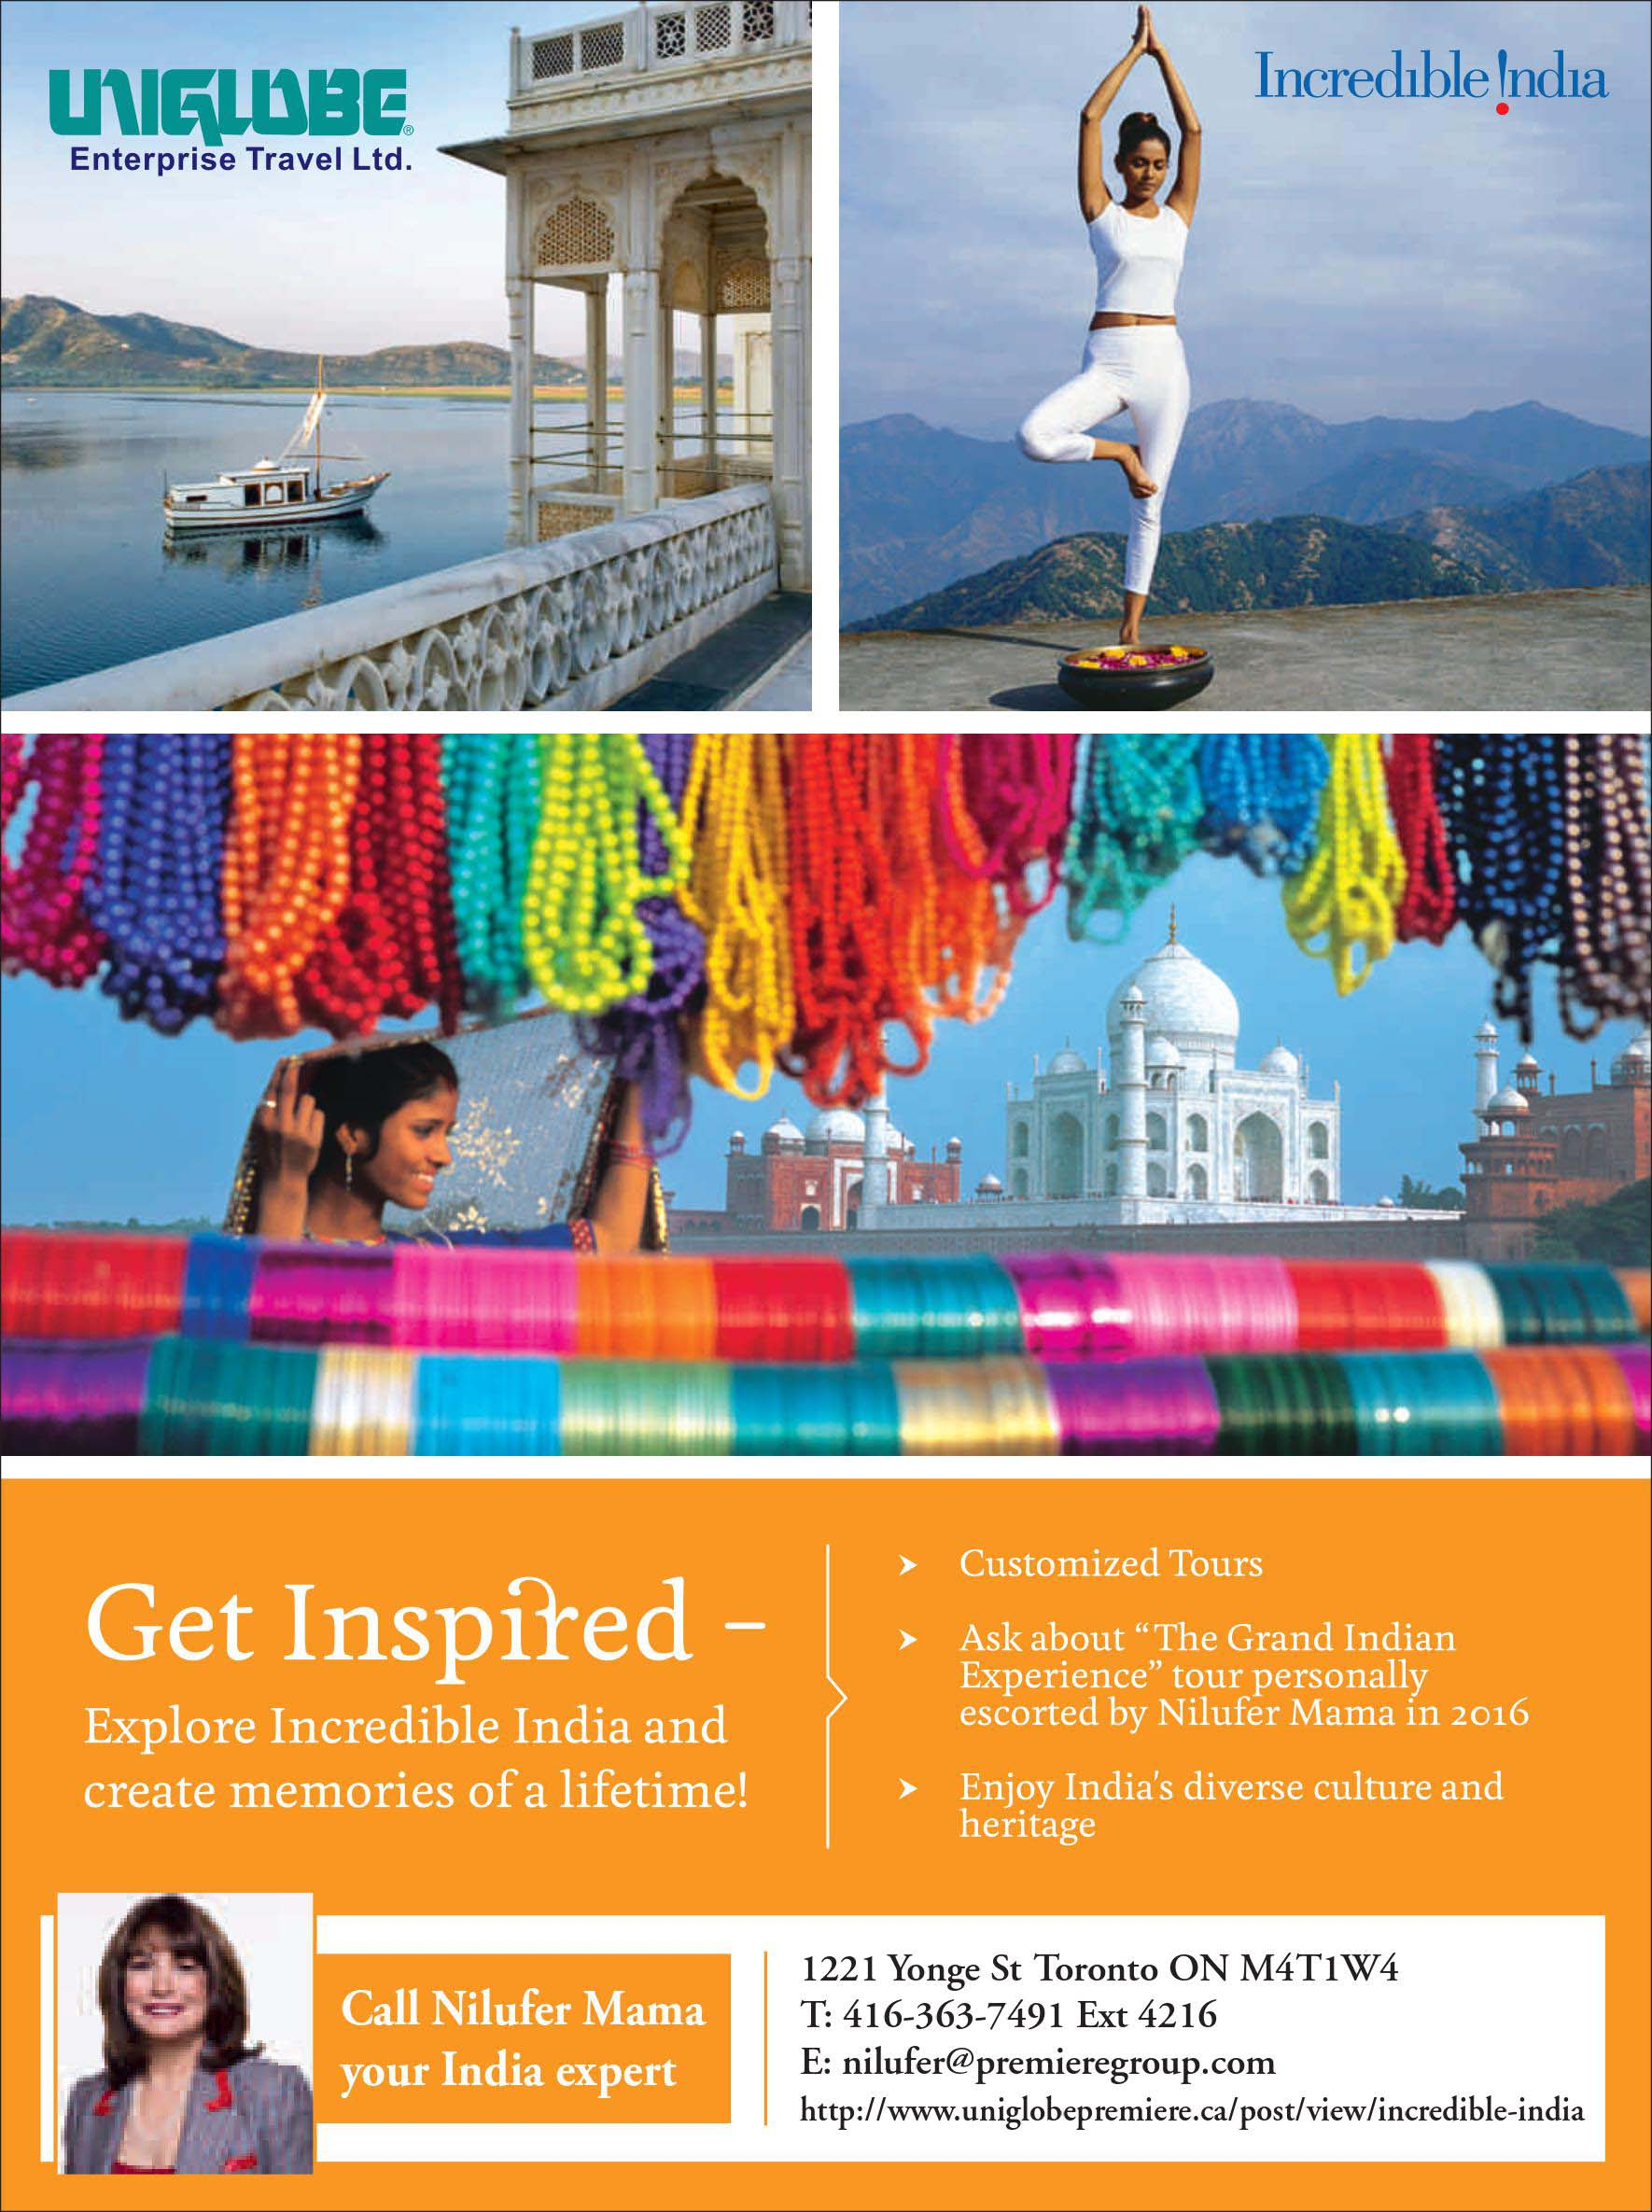 Incredible India Travel Agency